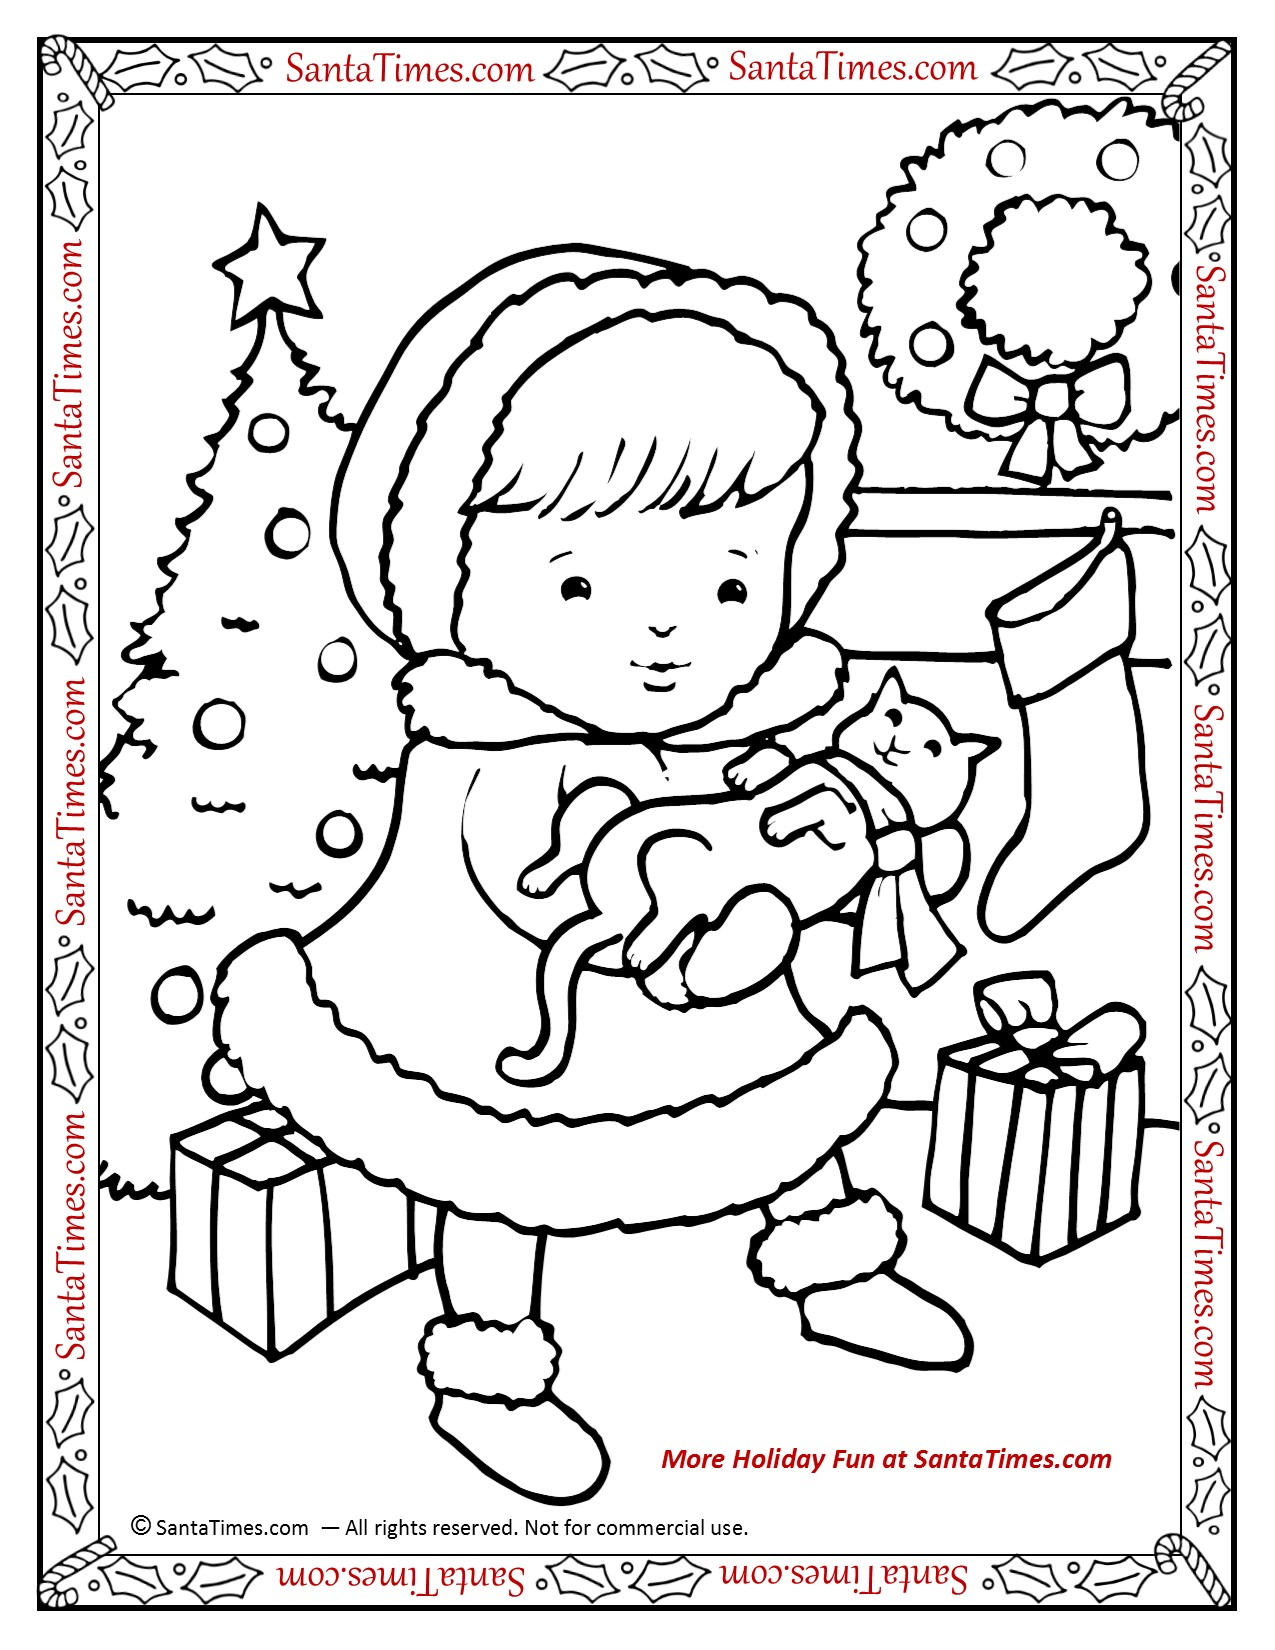 hello christmas kitty printable coloring page